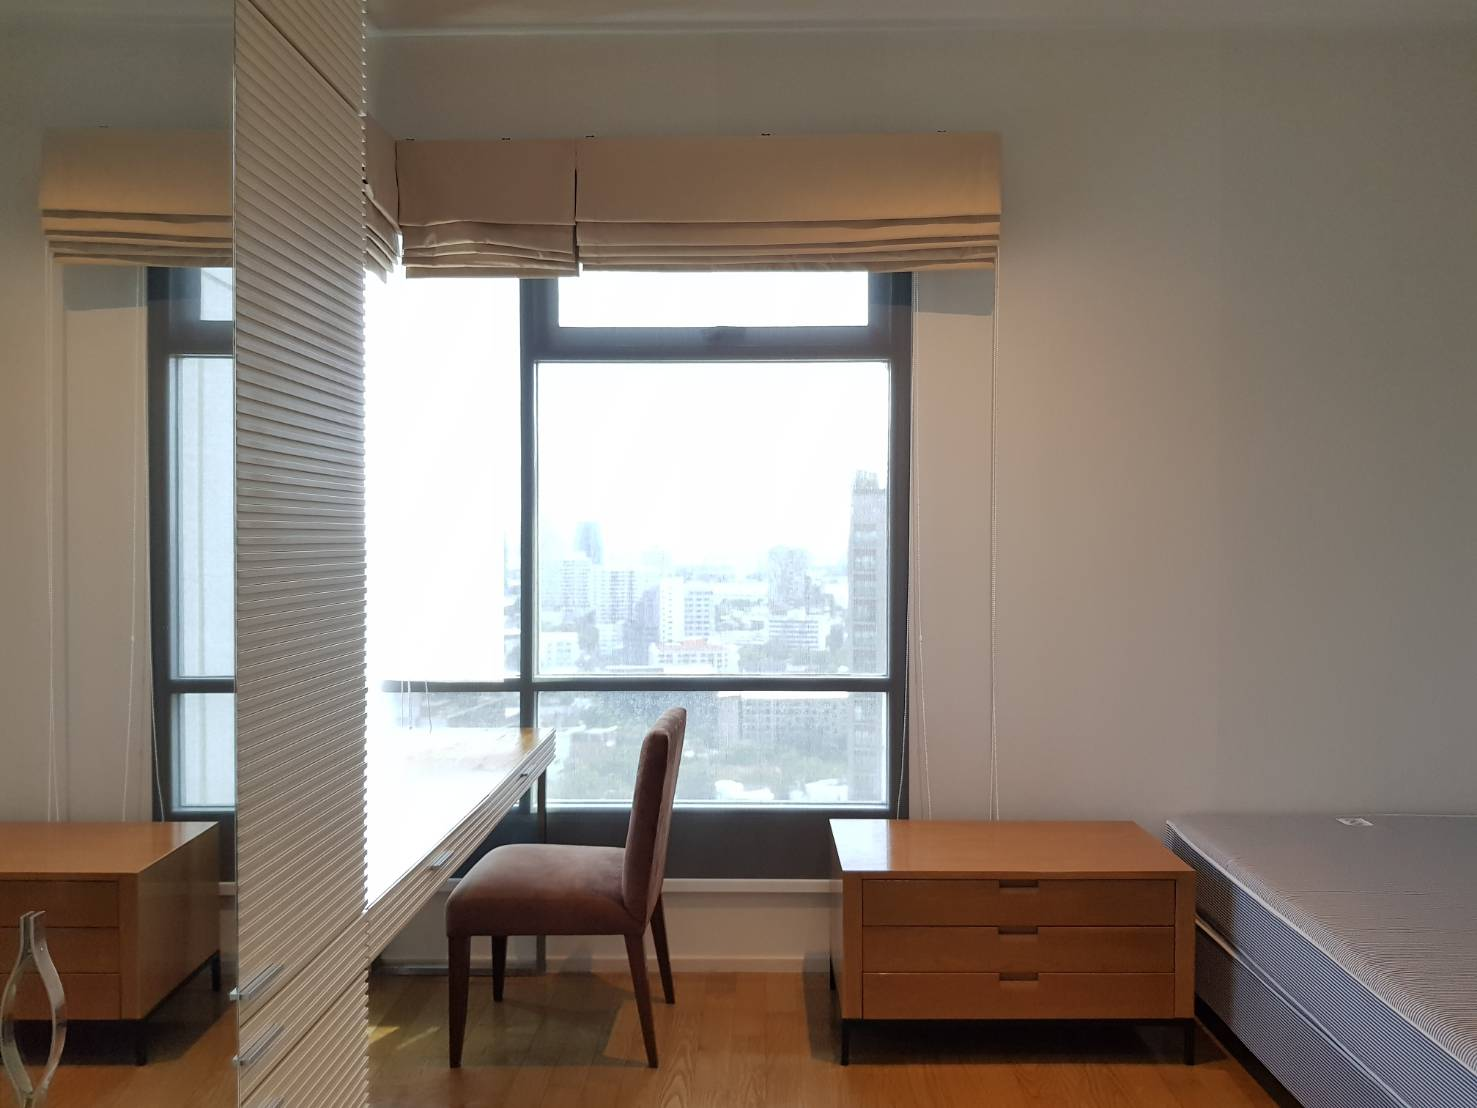 Bangkok Property Condo Apartment House Real Estate For Rent in Phrom Phong Sukhumvit Smooth & Clean Style